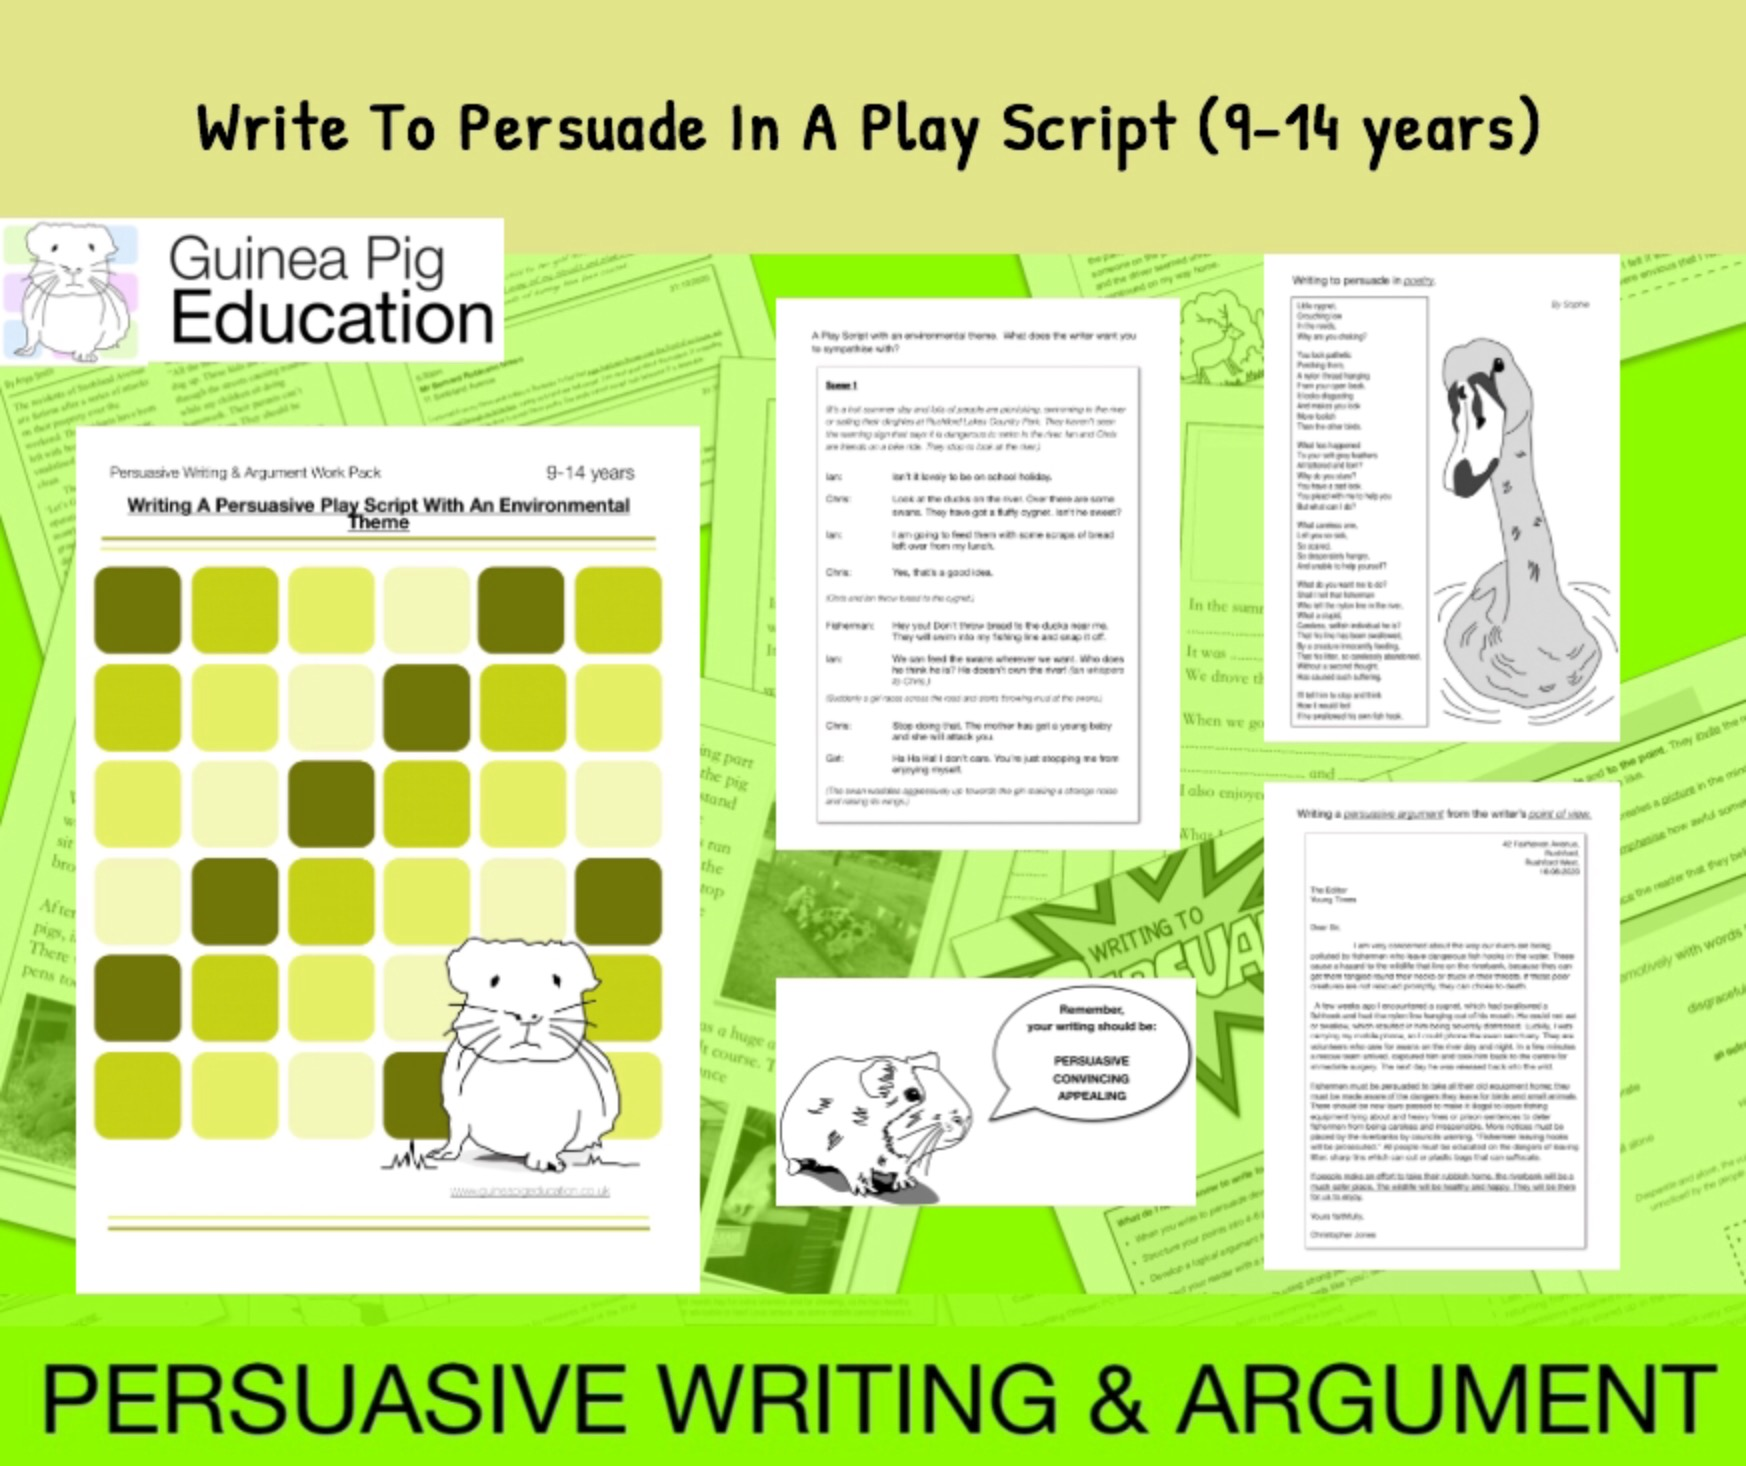 How To Write To Persuade In A Play Script (with an environmental theme)  (9-14 years)